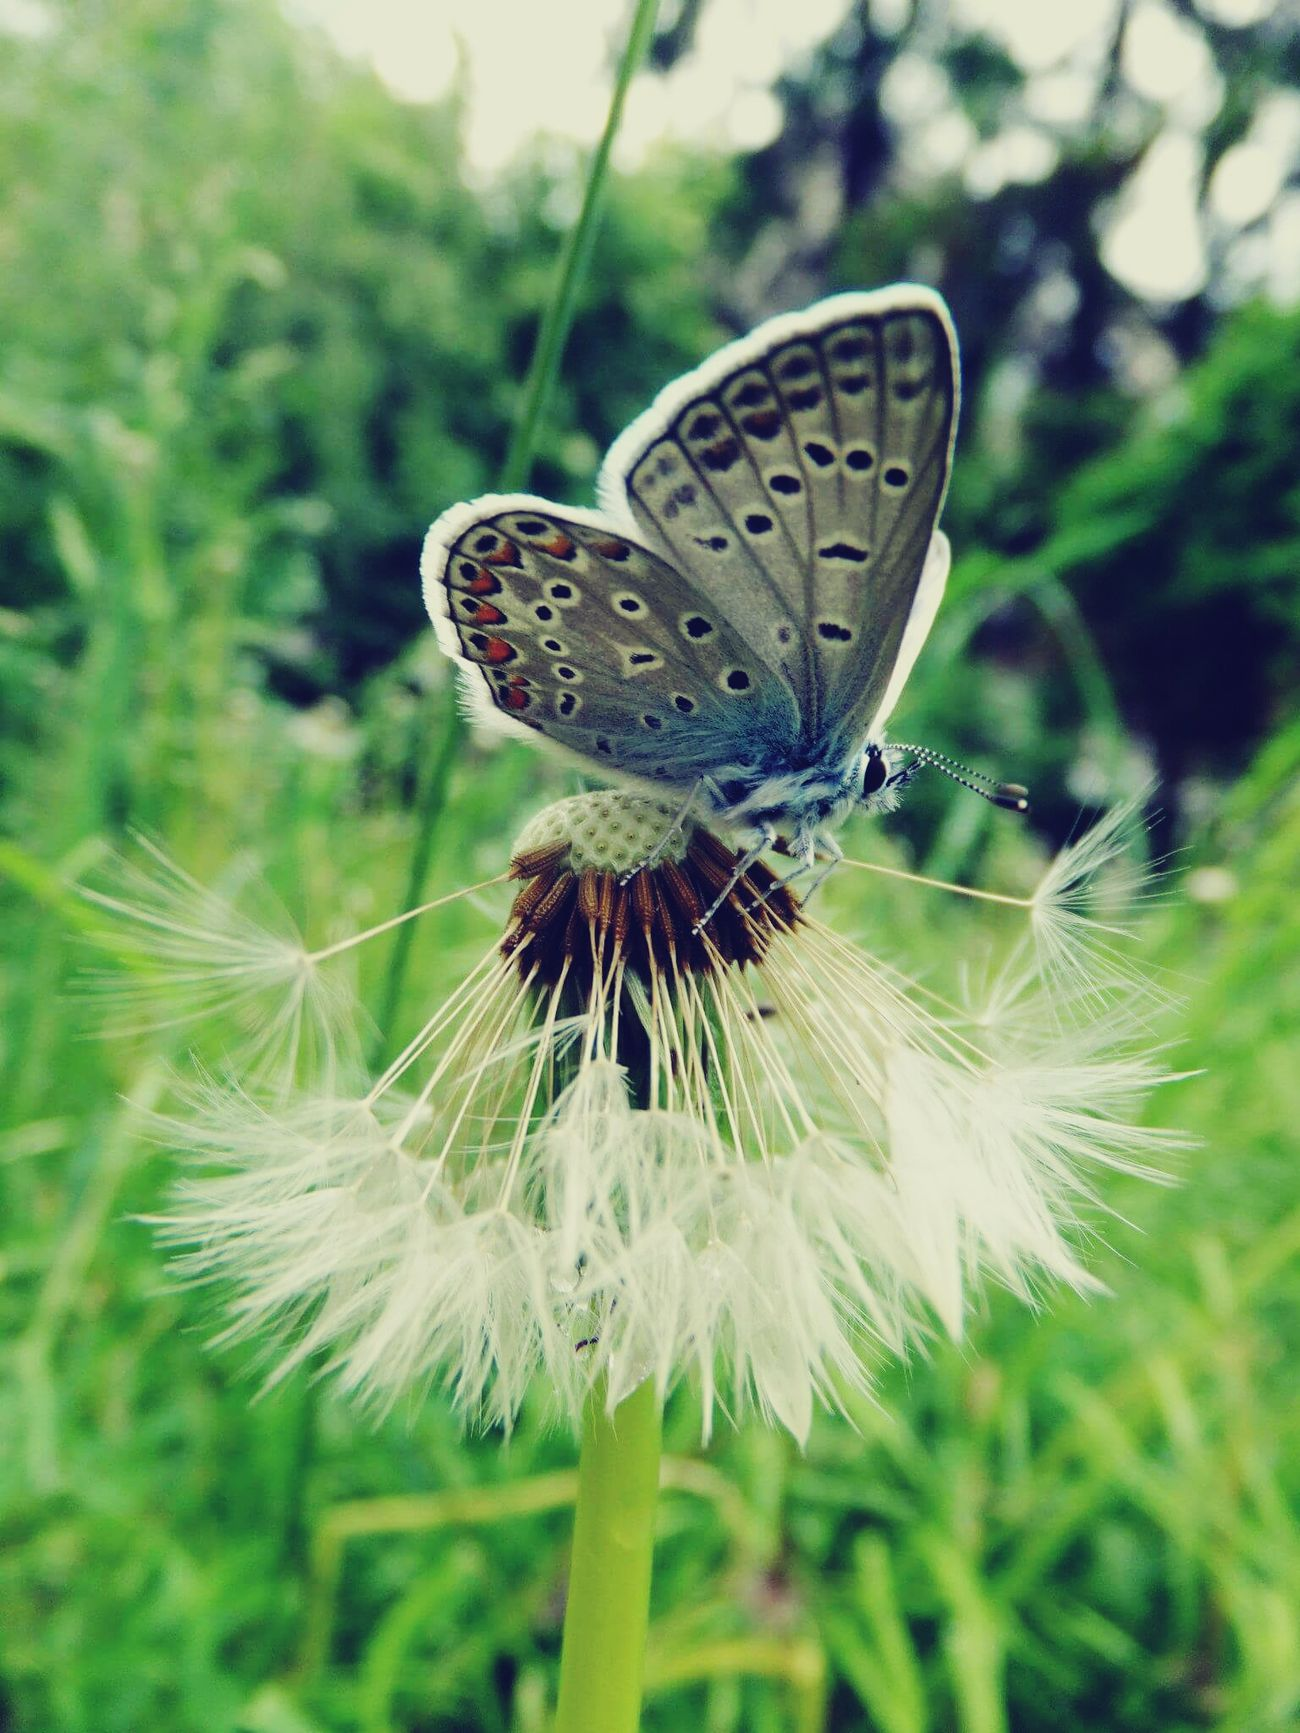 Maximum Closeness Butterfly - Insect Perfect Shot Butterfly Eating Fragility Close-up My Yard  Focus On Insect Beautiful Butterfly I Love This World I Love Nature Life Summershots No People Tranquility Peaceful Day Lovely Creature Dandelion Fluff